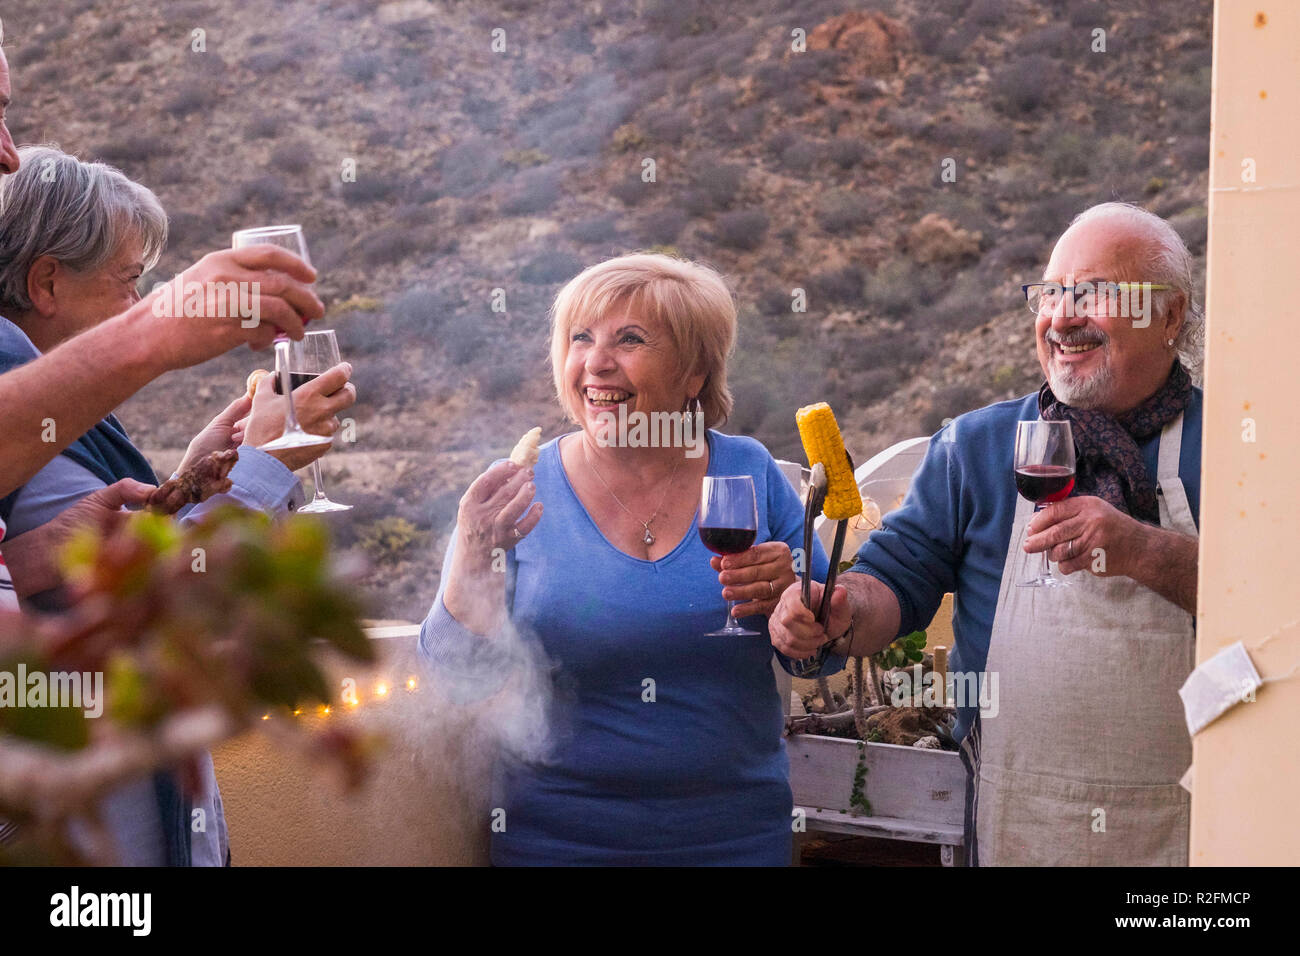 rooftop terrace bbq for four senior aged men and women staying together outdoor on the terrace. mountains and nature background for nice activity happy - Stock Image